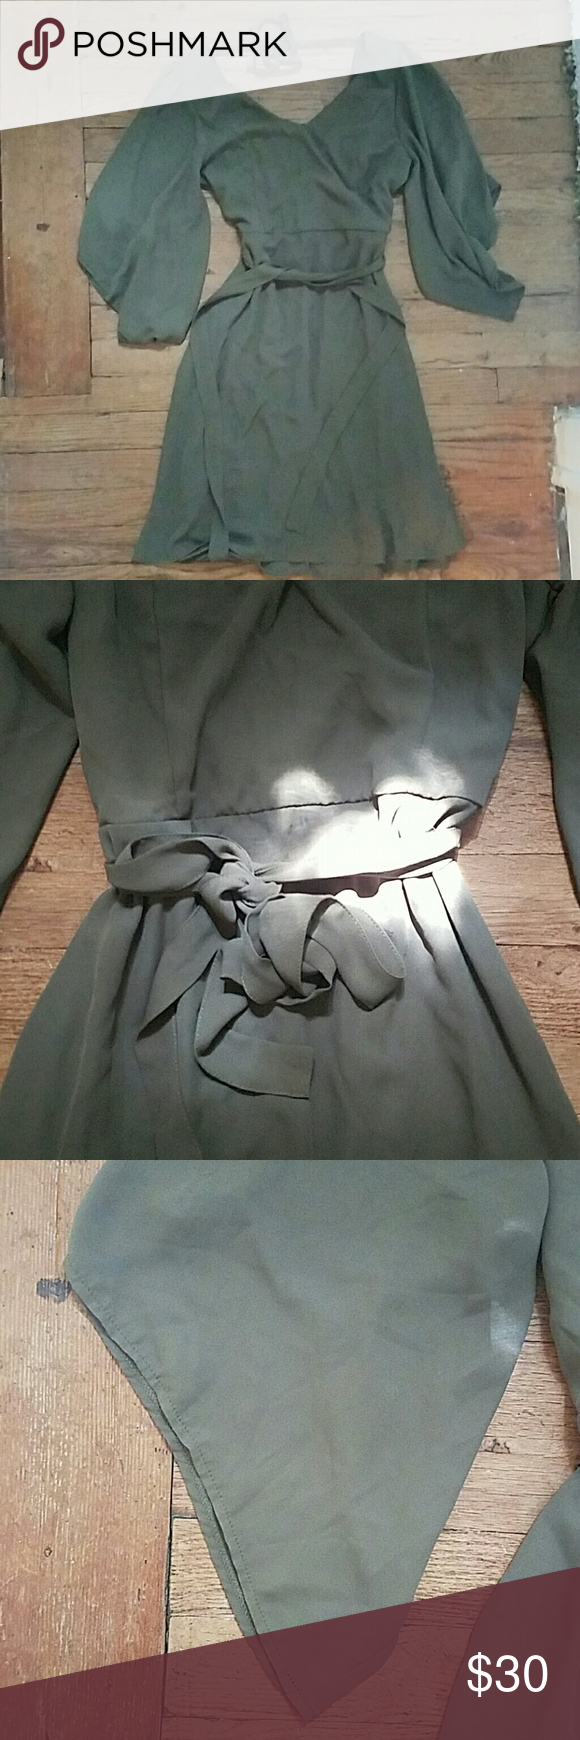 Kimono sleeve dress Olive green kimono sleeve dress with a tie waist, zipper back, and open v back with a tie that goes across the neck. Never worn, tags still on. Dresses